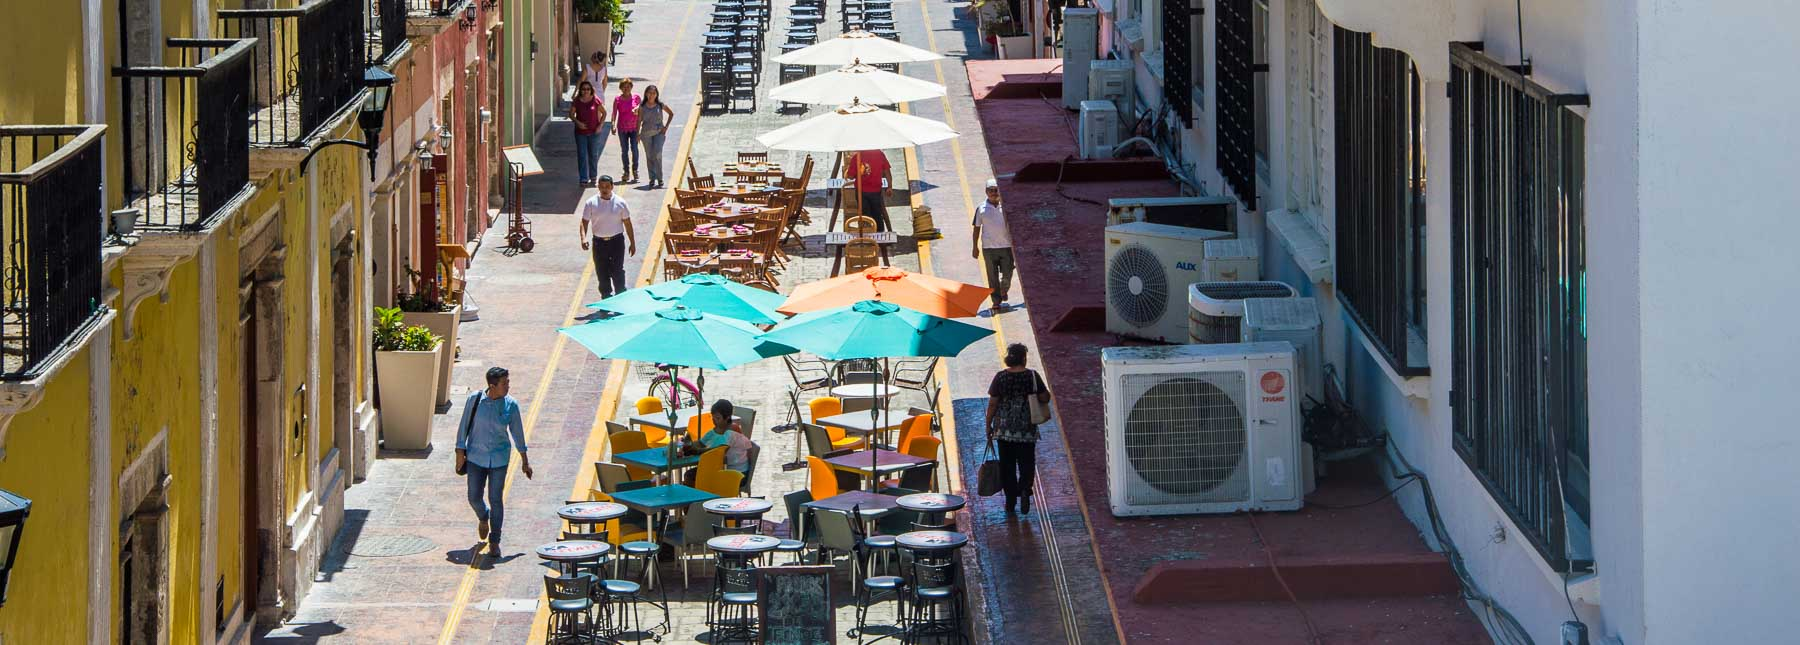 Tables shaded by umbrellas on a Campeche street.